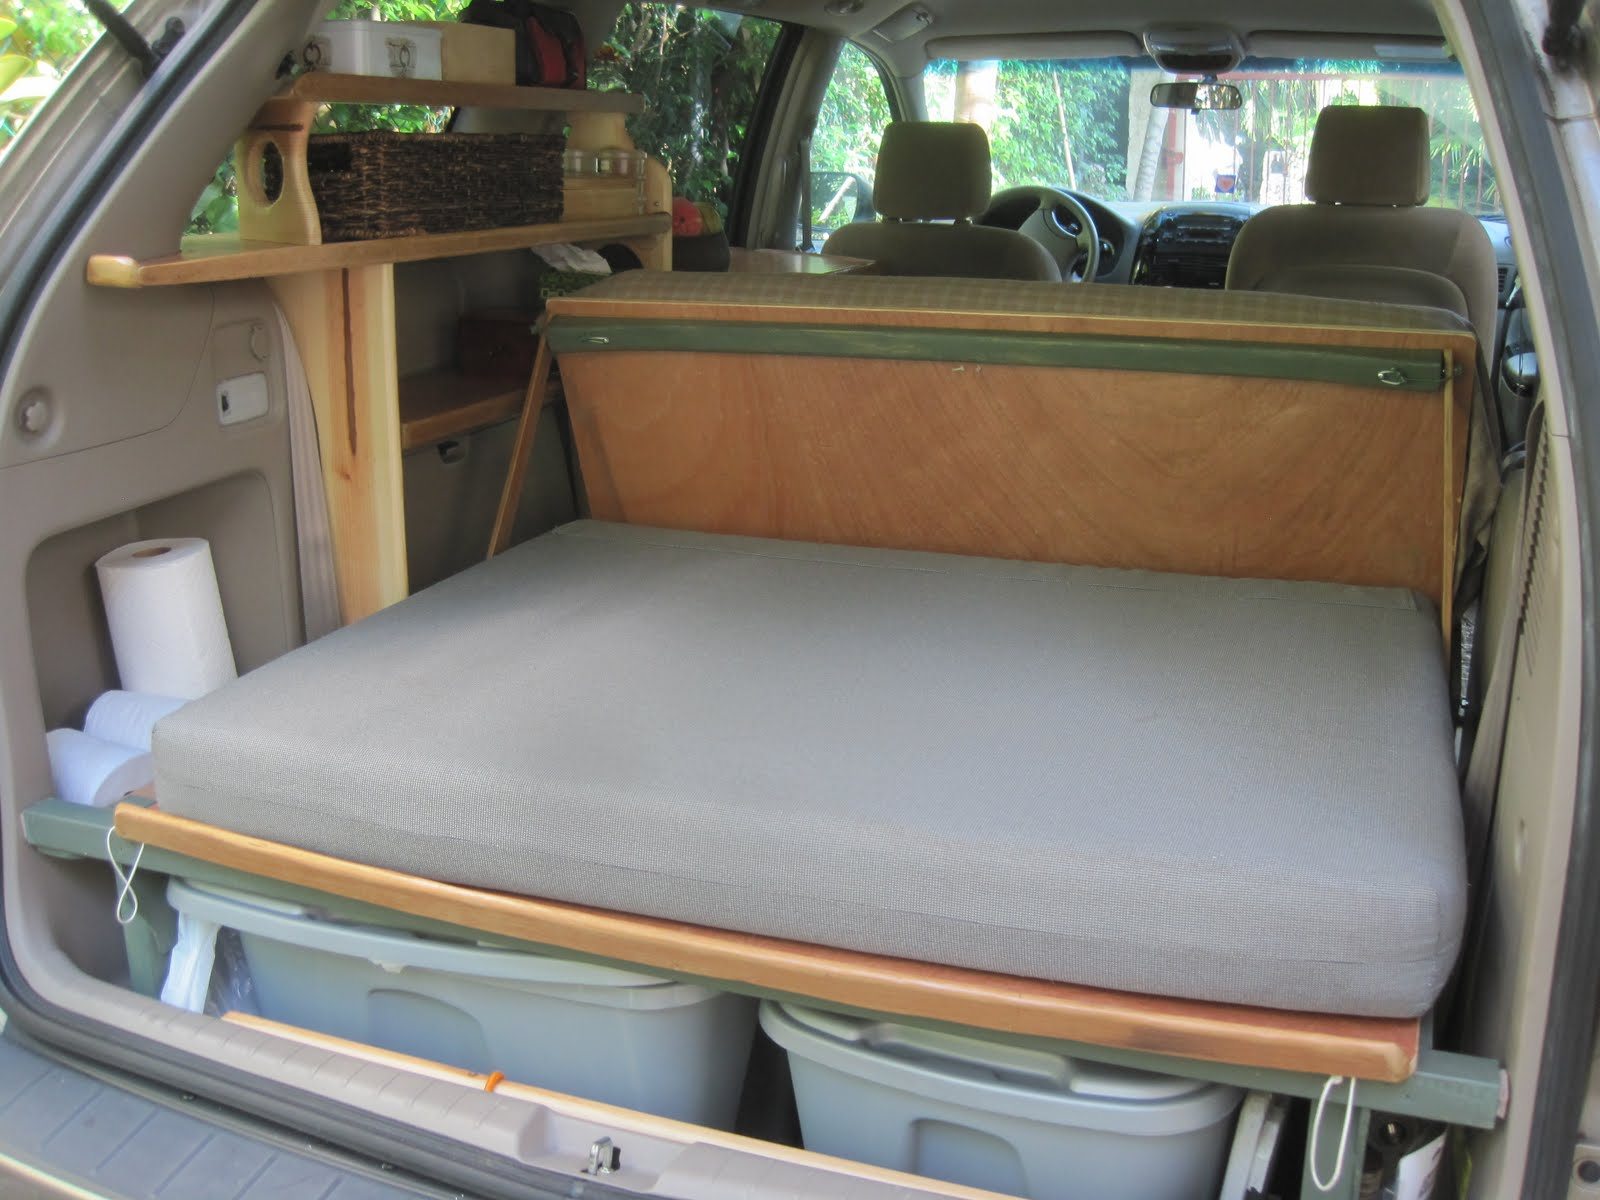 http://autoaddicts.net/diy-camper-van-conversions-motorhomes-insight